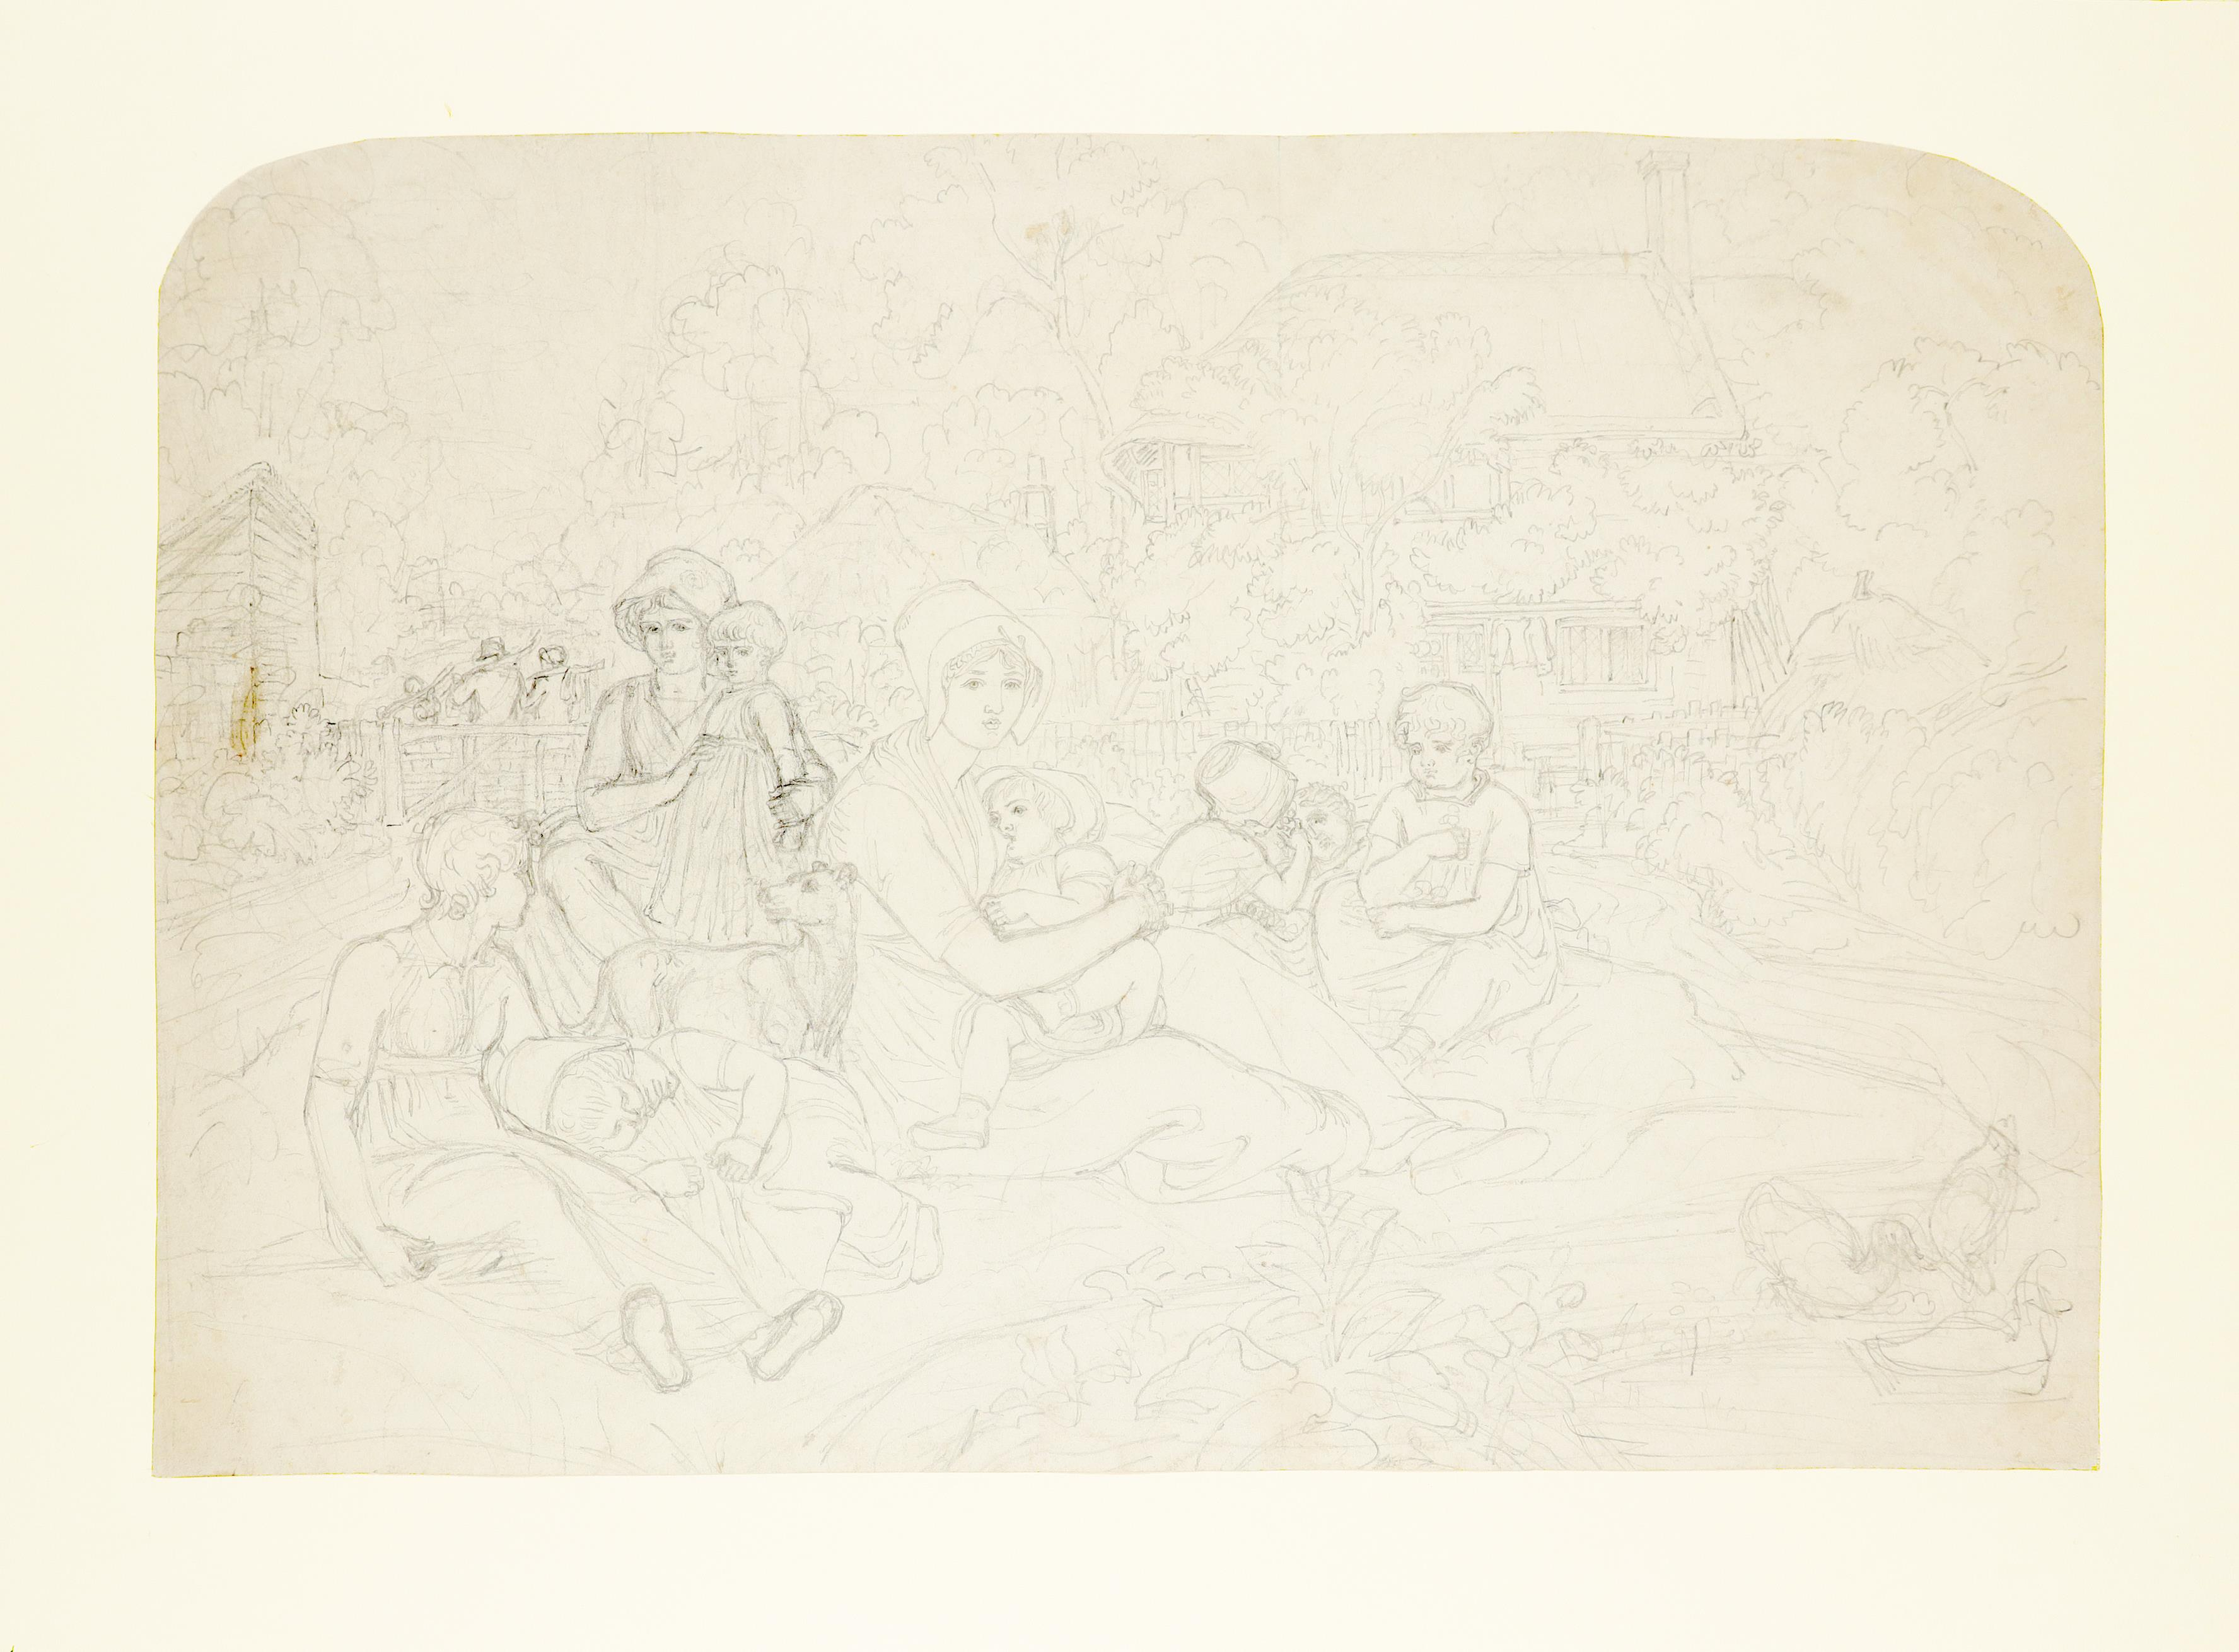 Joshua Cristall (c.1767-1847) Sketch of figures before a cottage Pencil 30 x 44cm; 11¾ x 17¾in - Image 2 of 3